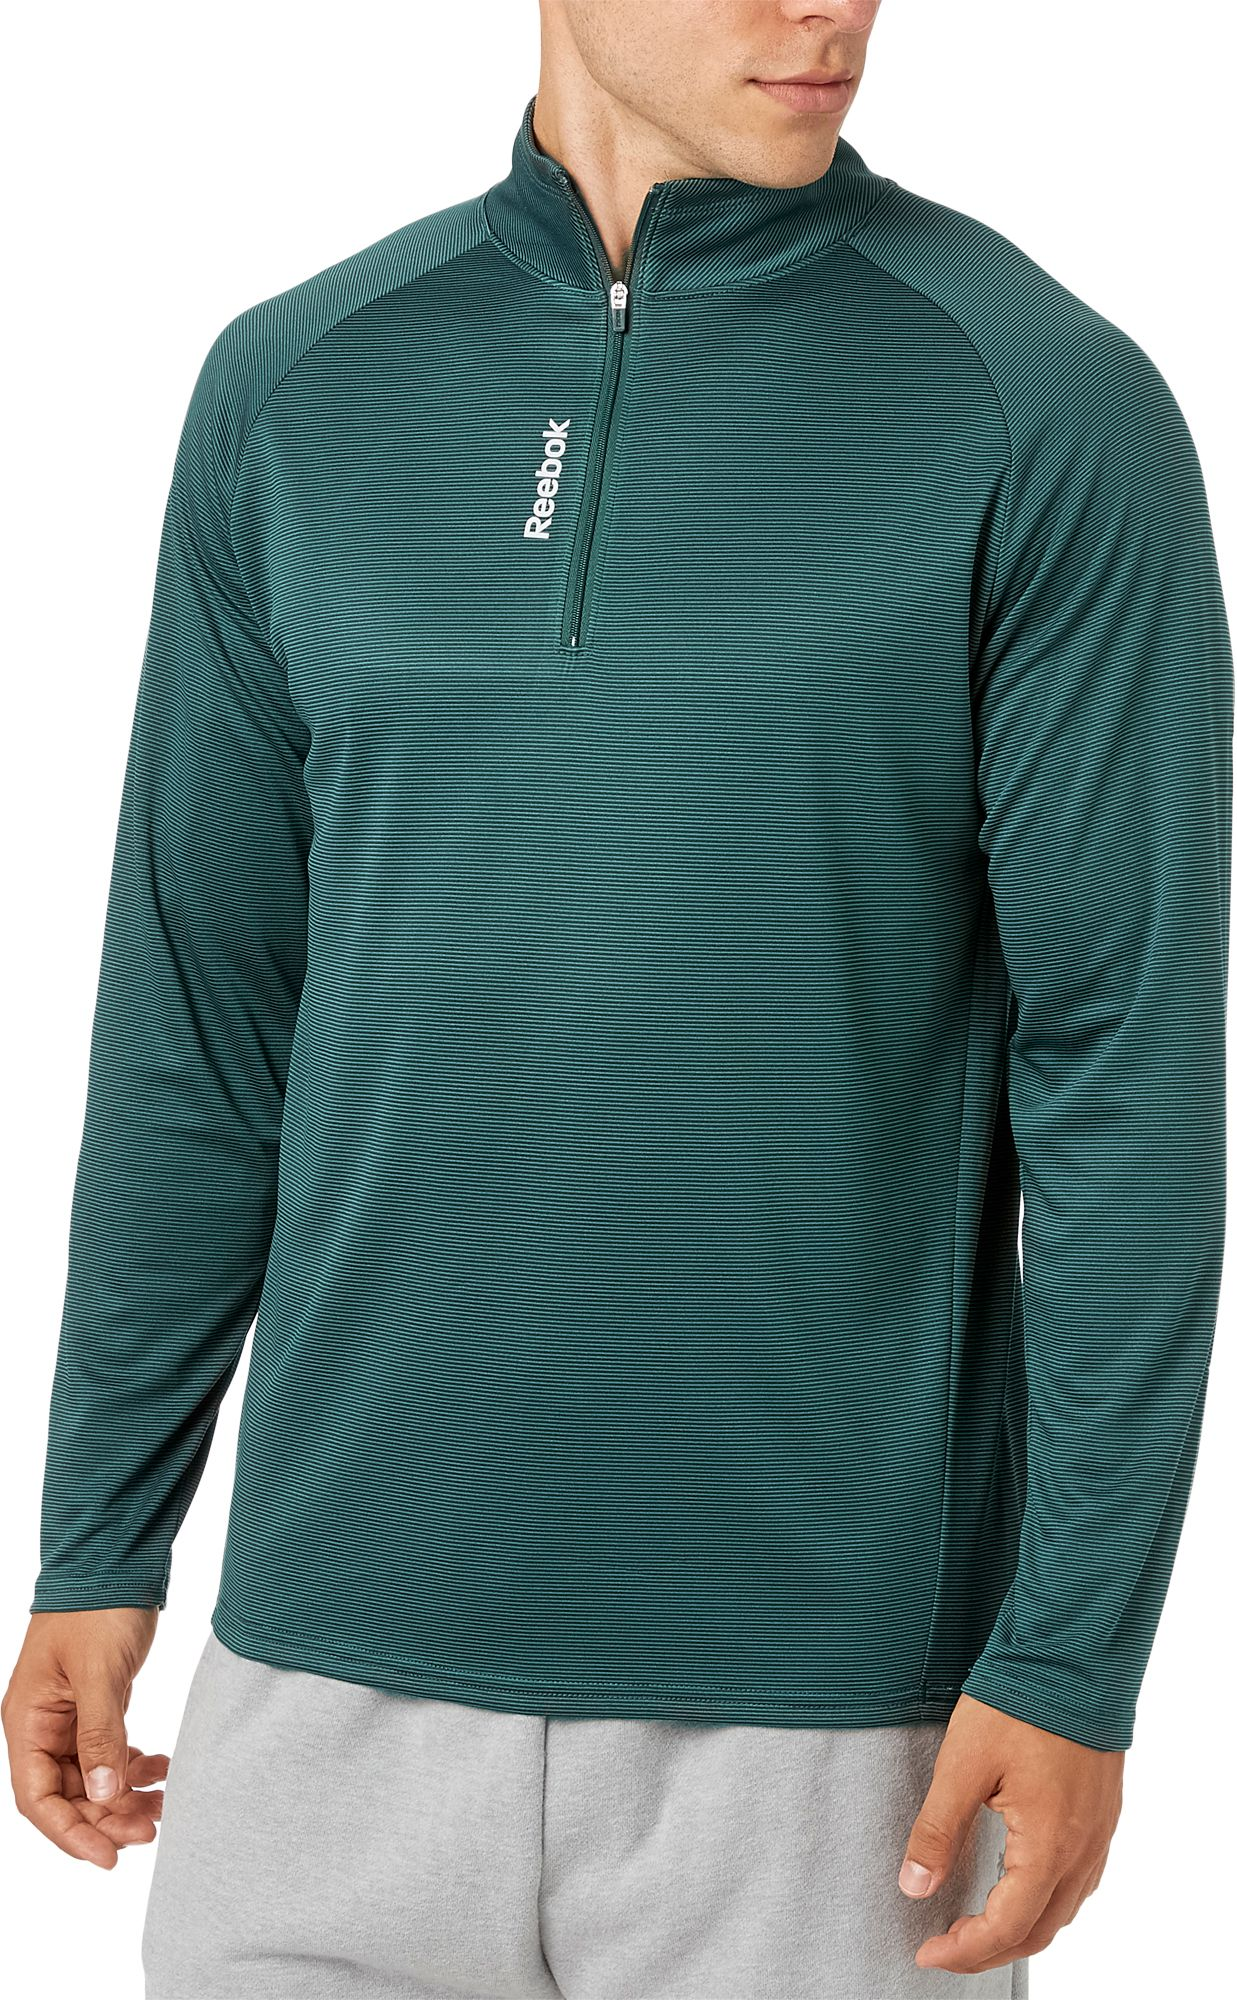 Reebok Men's Stripe Performance 1/4 Zip Long Sleeve Shirt. 0:00. 0:00 /  0:00. noImageFound ???